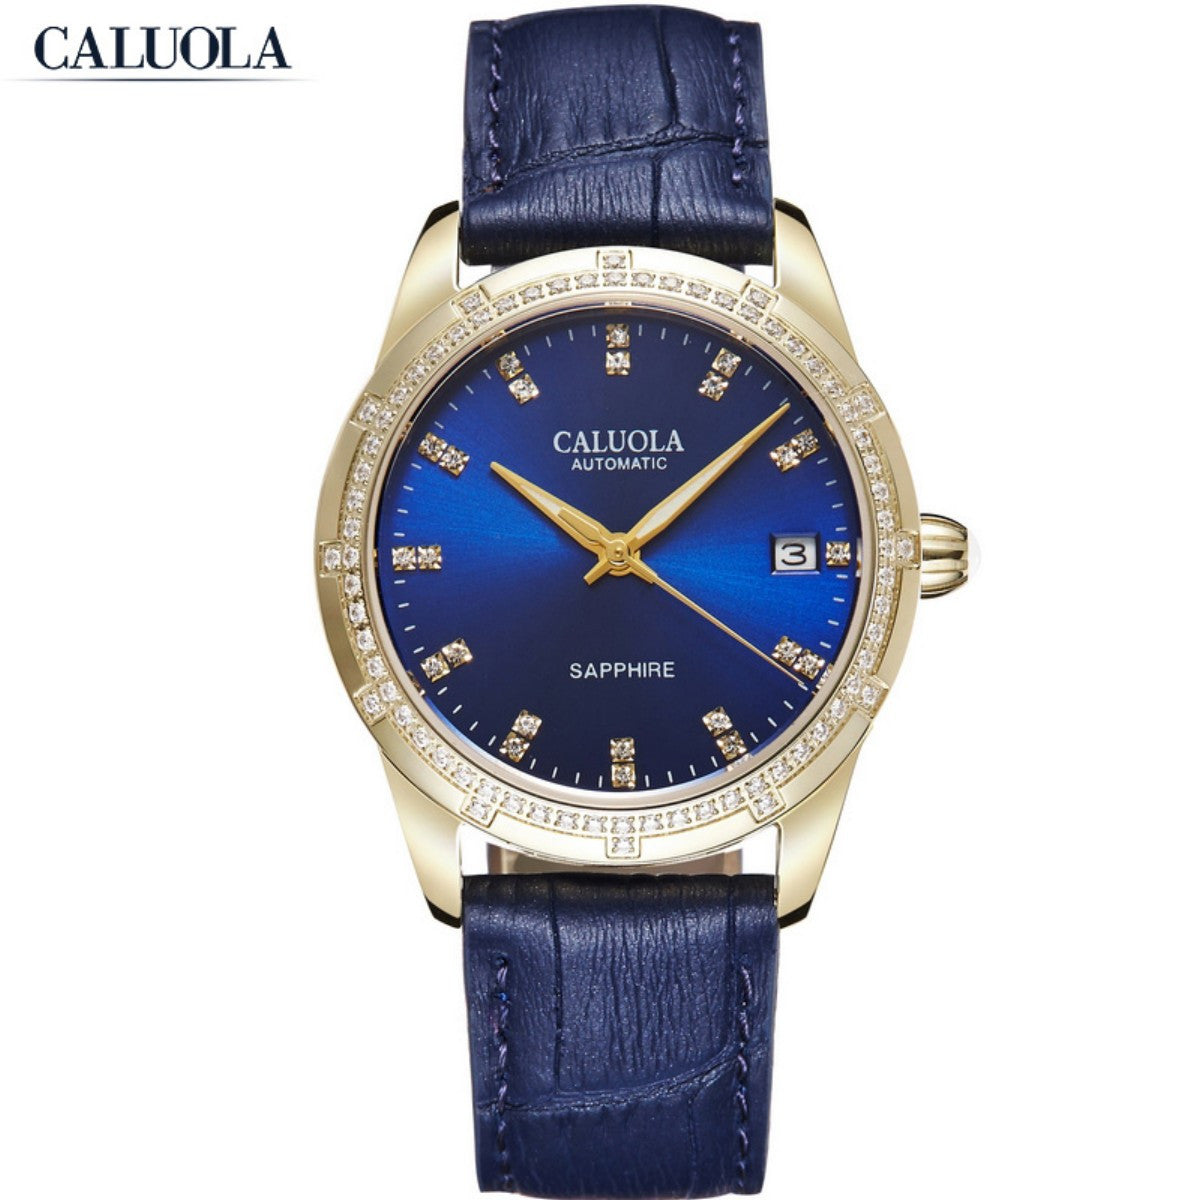 Caluola Automatic Watch Diamond Date Luminous Fashion Leather Strap Watch Women Watch CA1202ML